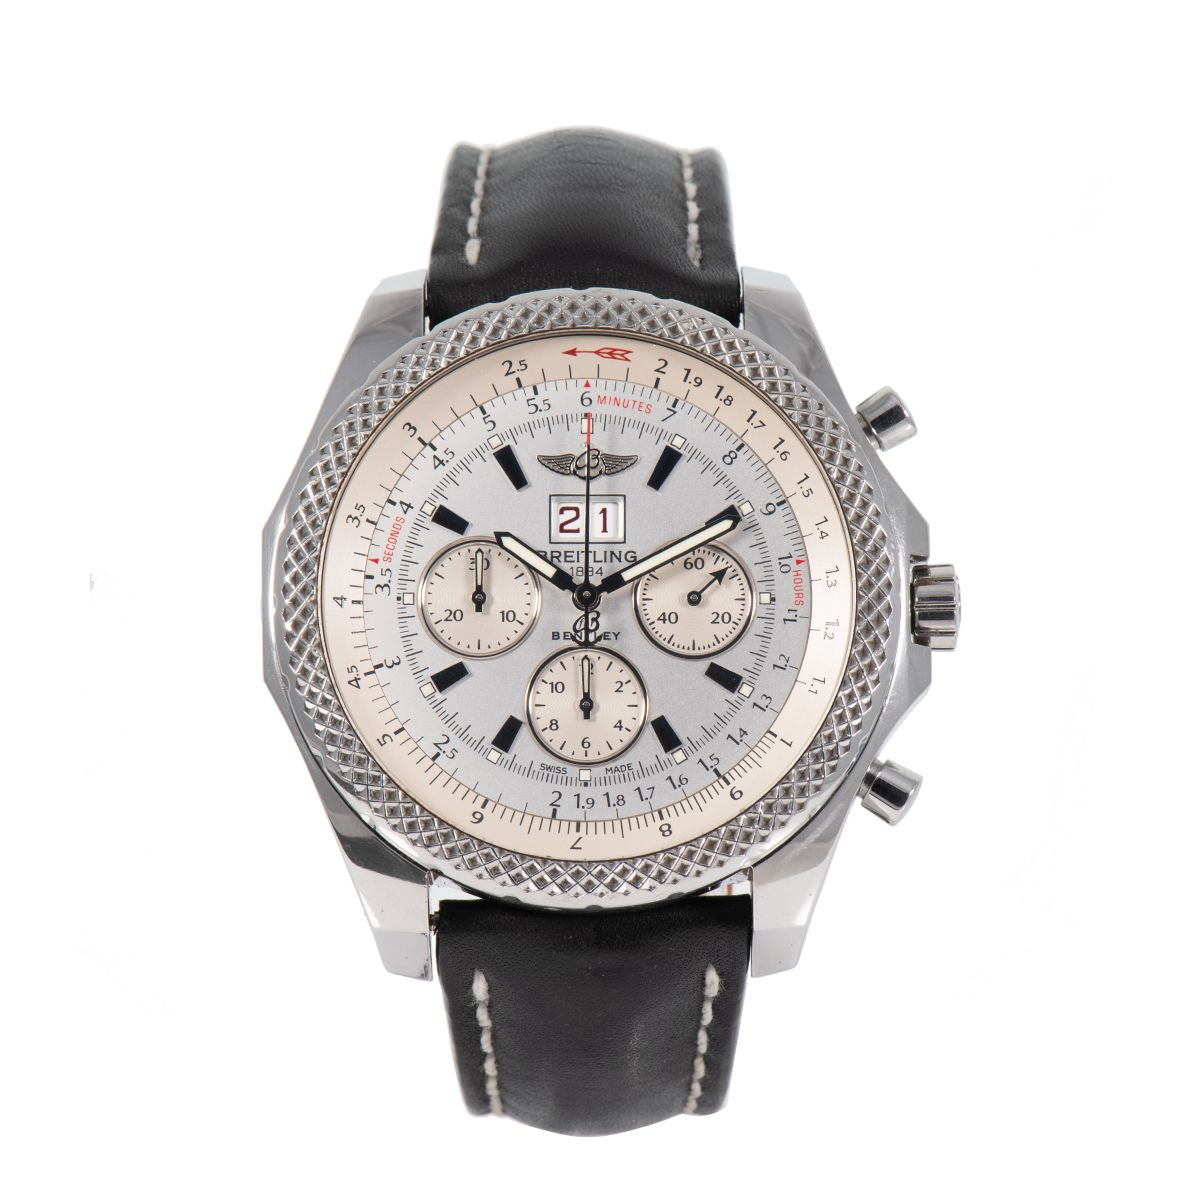 Breitling Bentley A44364 - 50mm Ceramic case Mens Watch